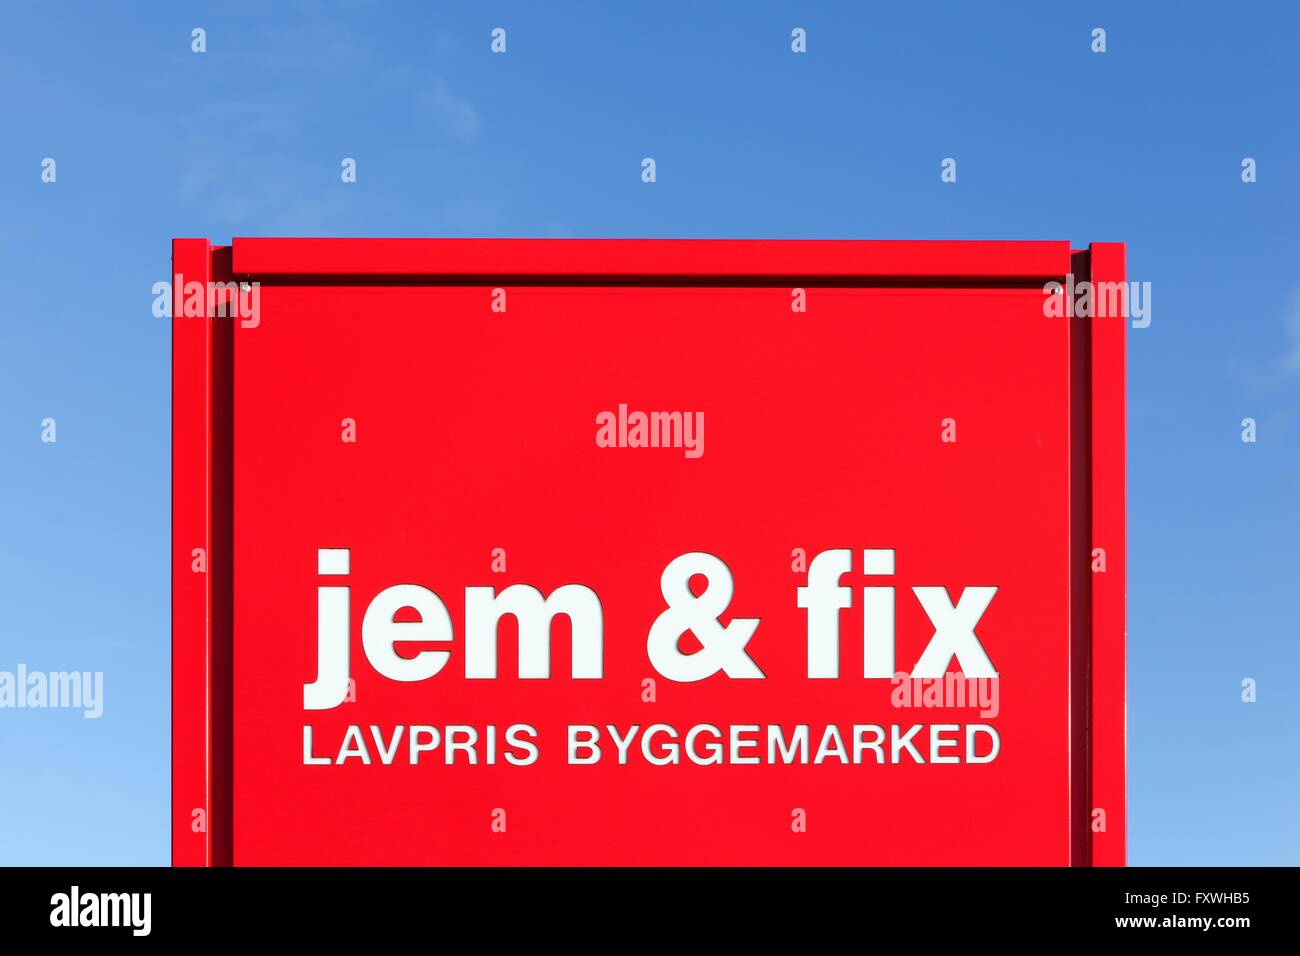 Jem and fix logo on a panel - Stock Image